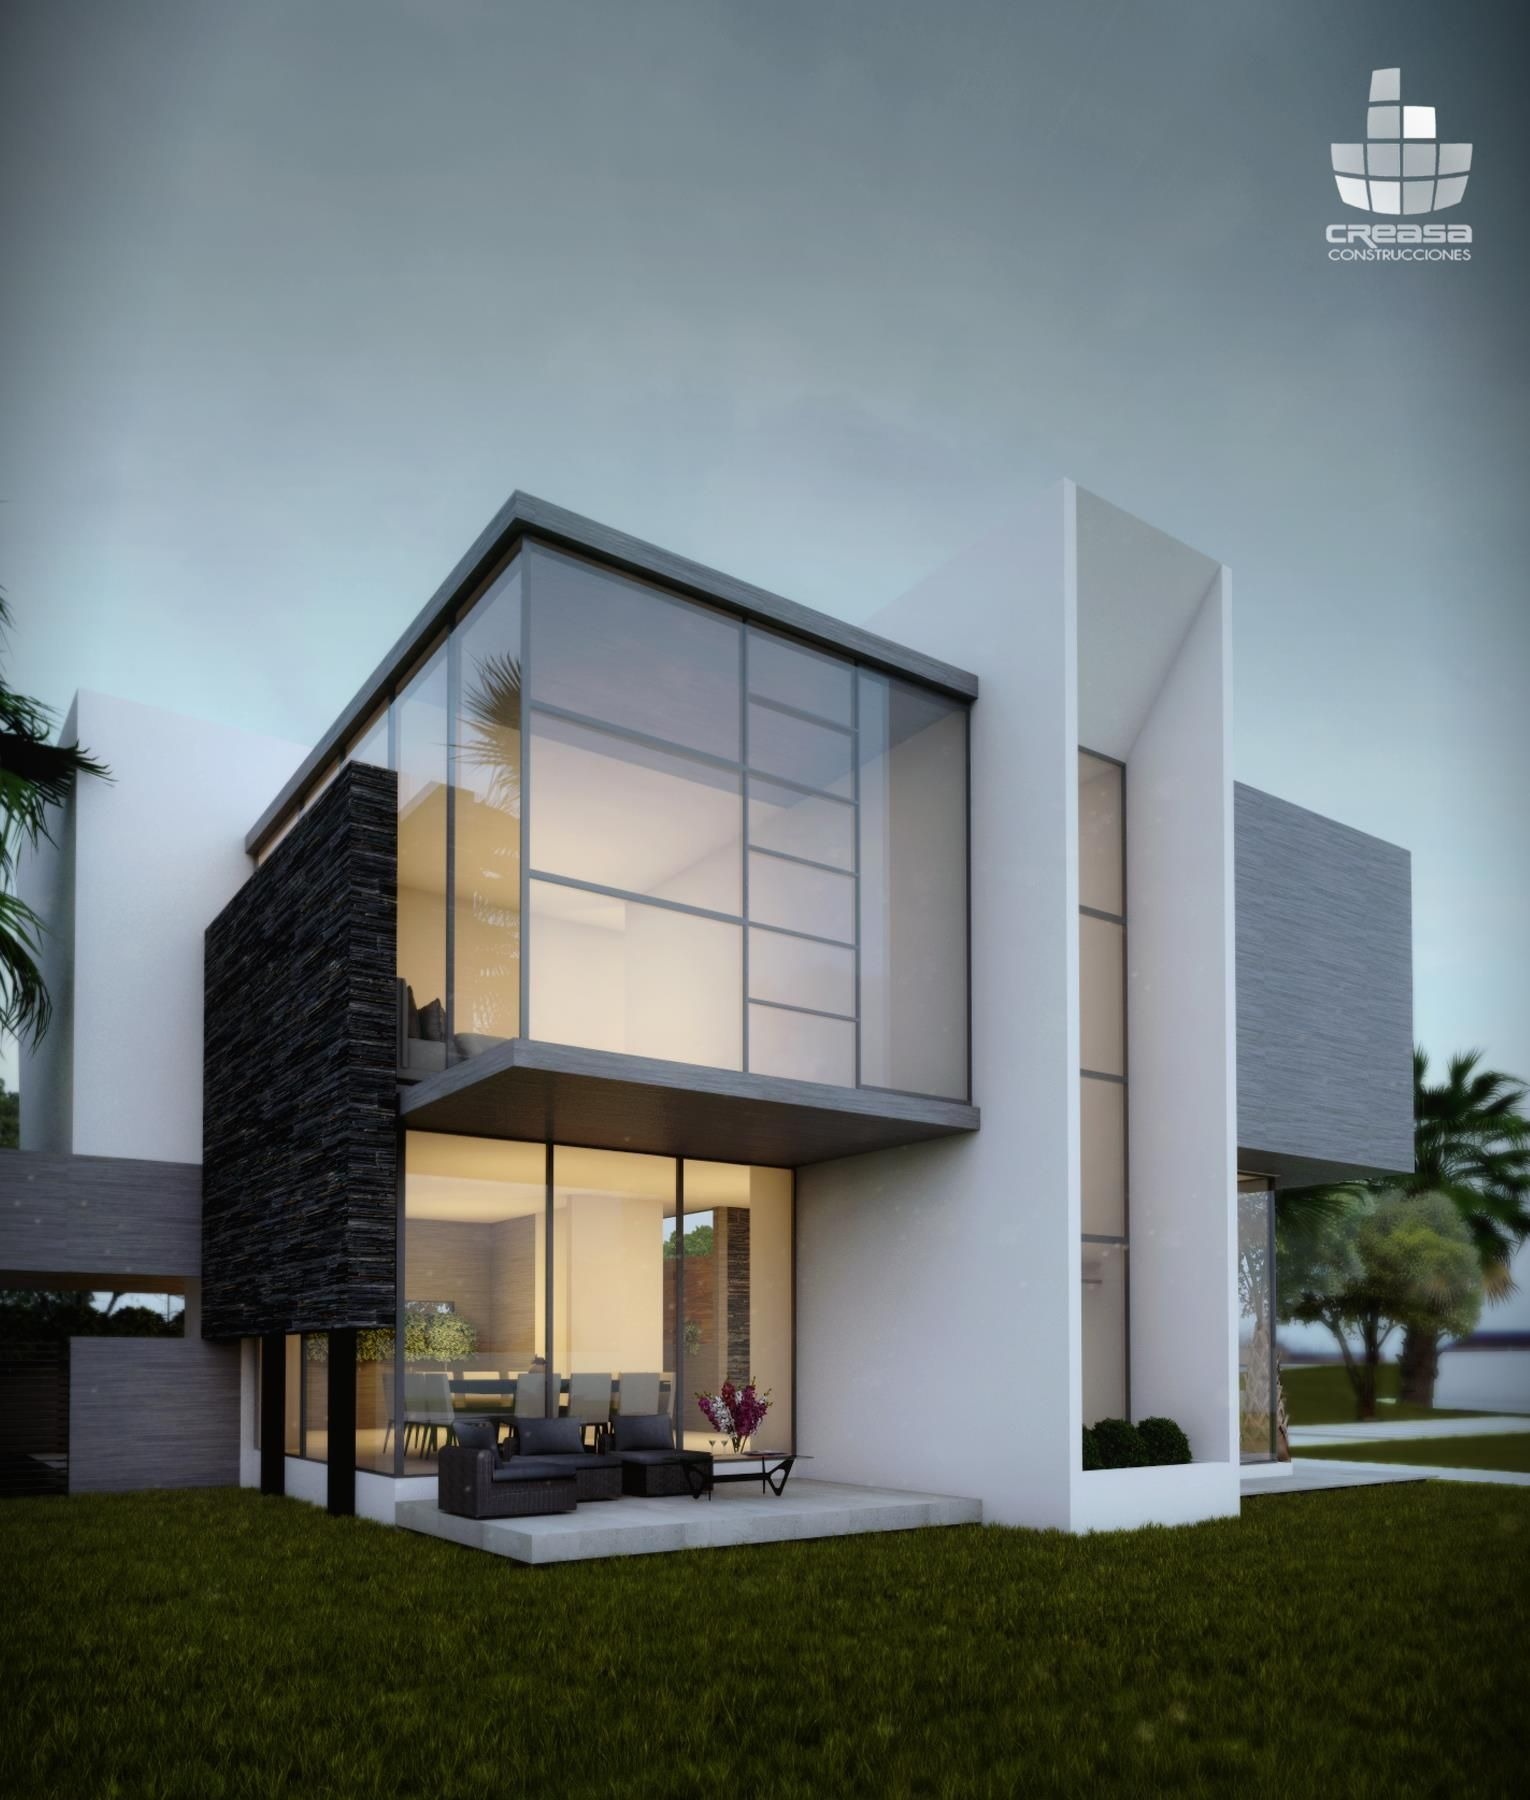 Creasa modern architecture pinterest villas house for Contemporary house design ideas